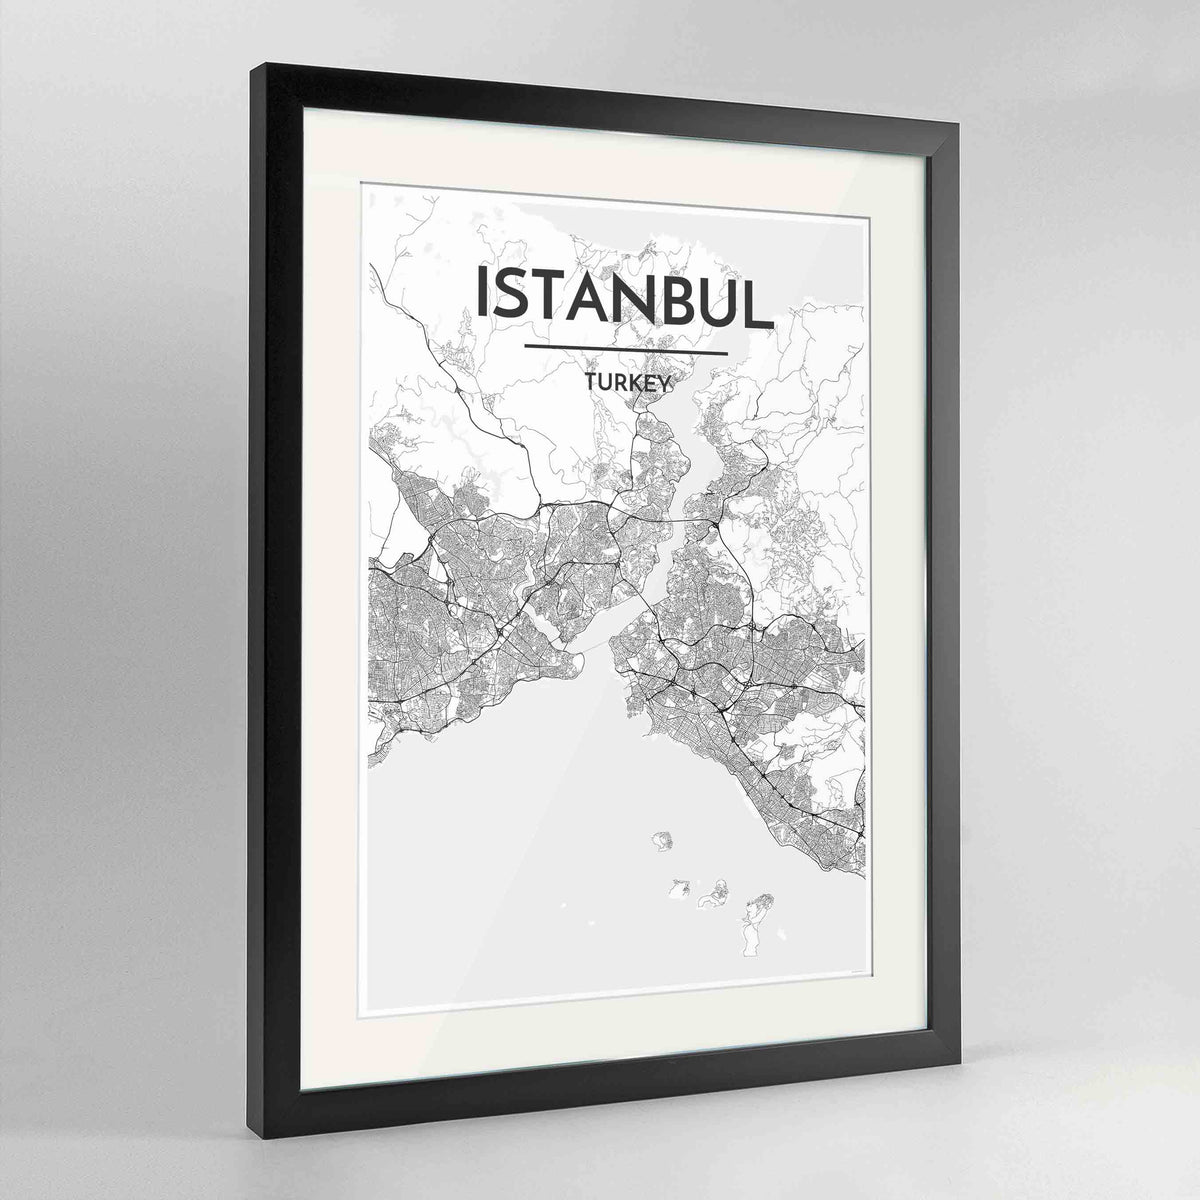 "Framed Istanbul Map Art Print 24x36"" Contemporary Black frame Point Two Design Group"